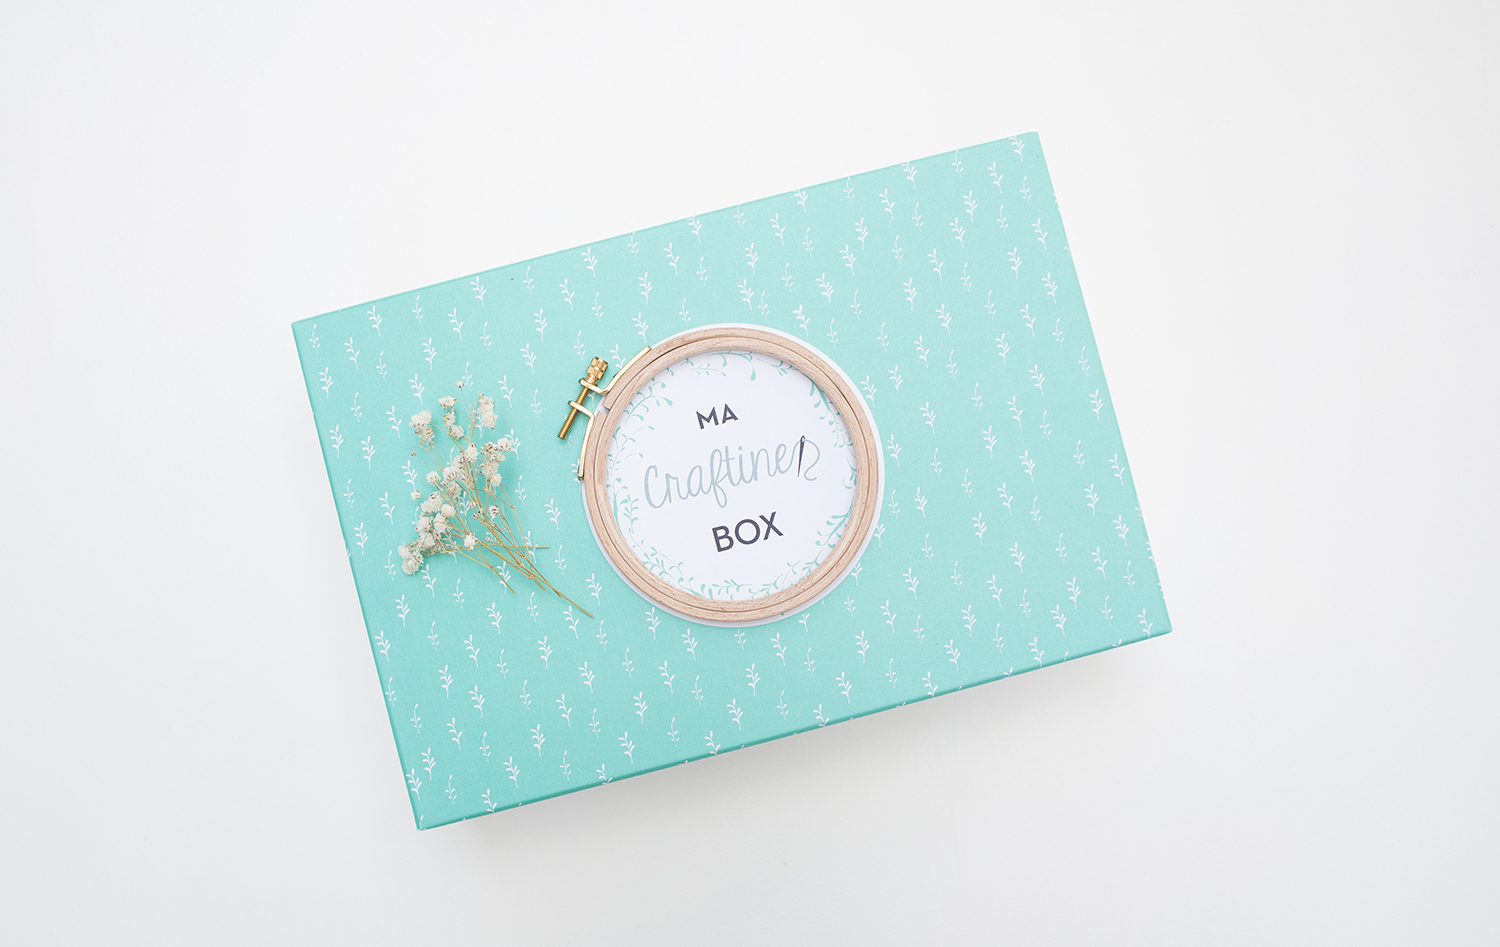 Petite and So What - Craftine Box